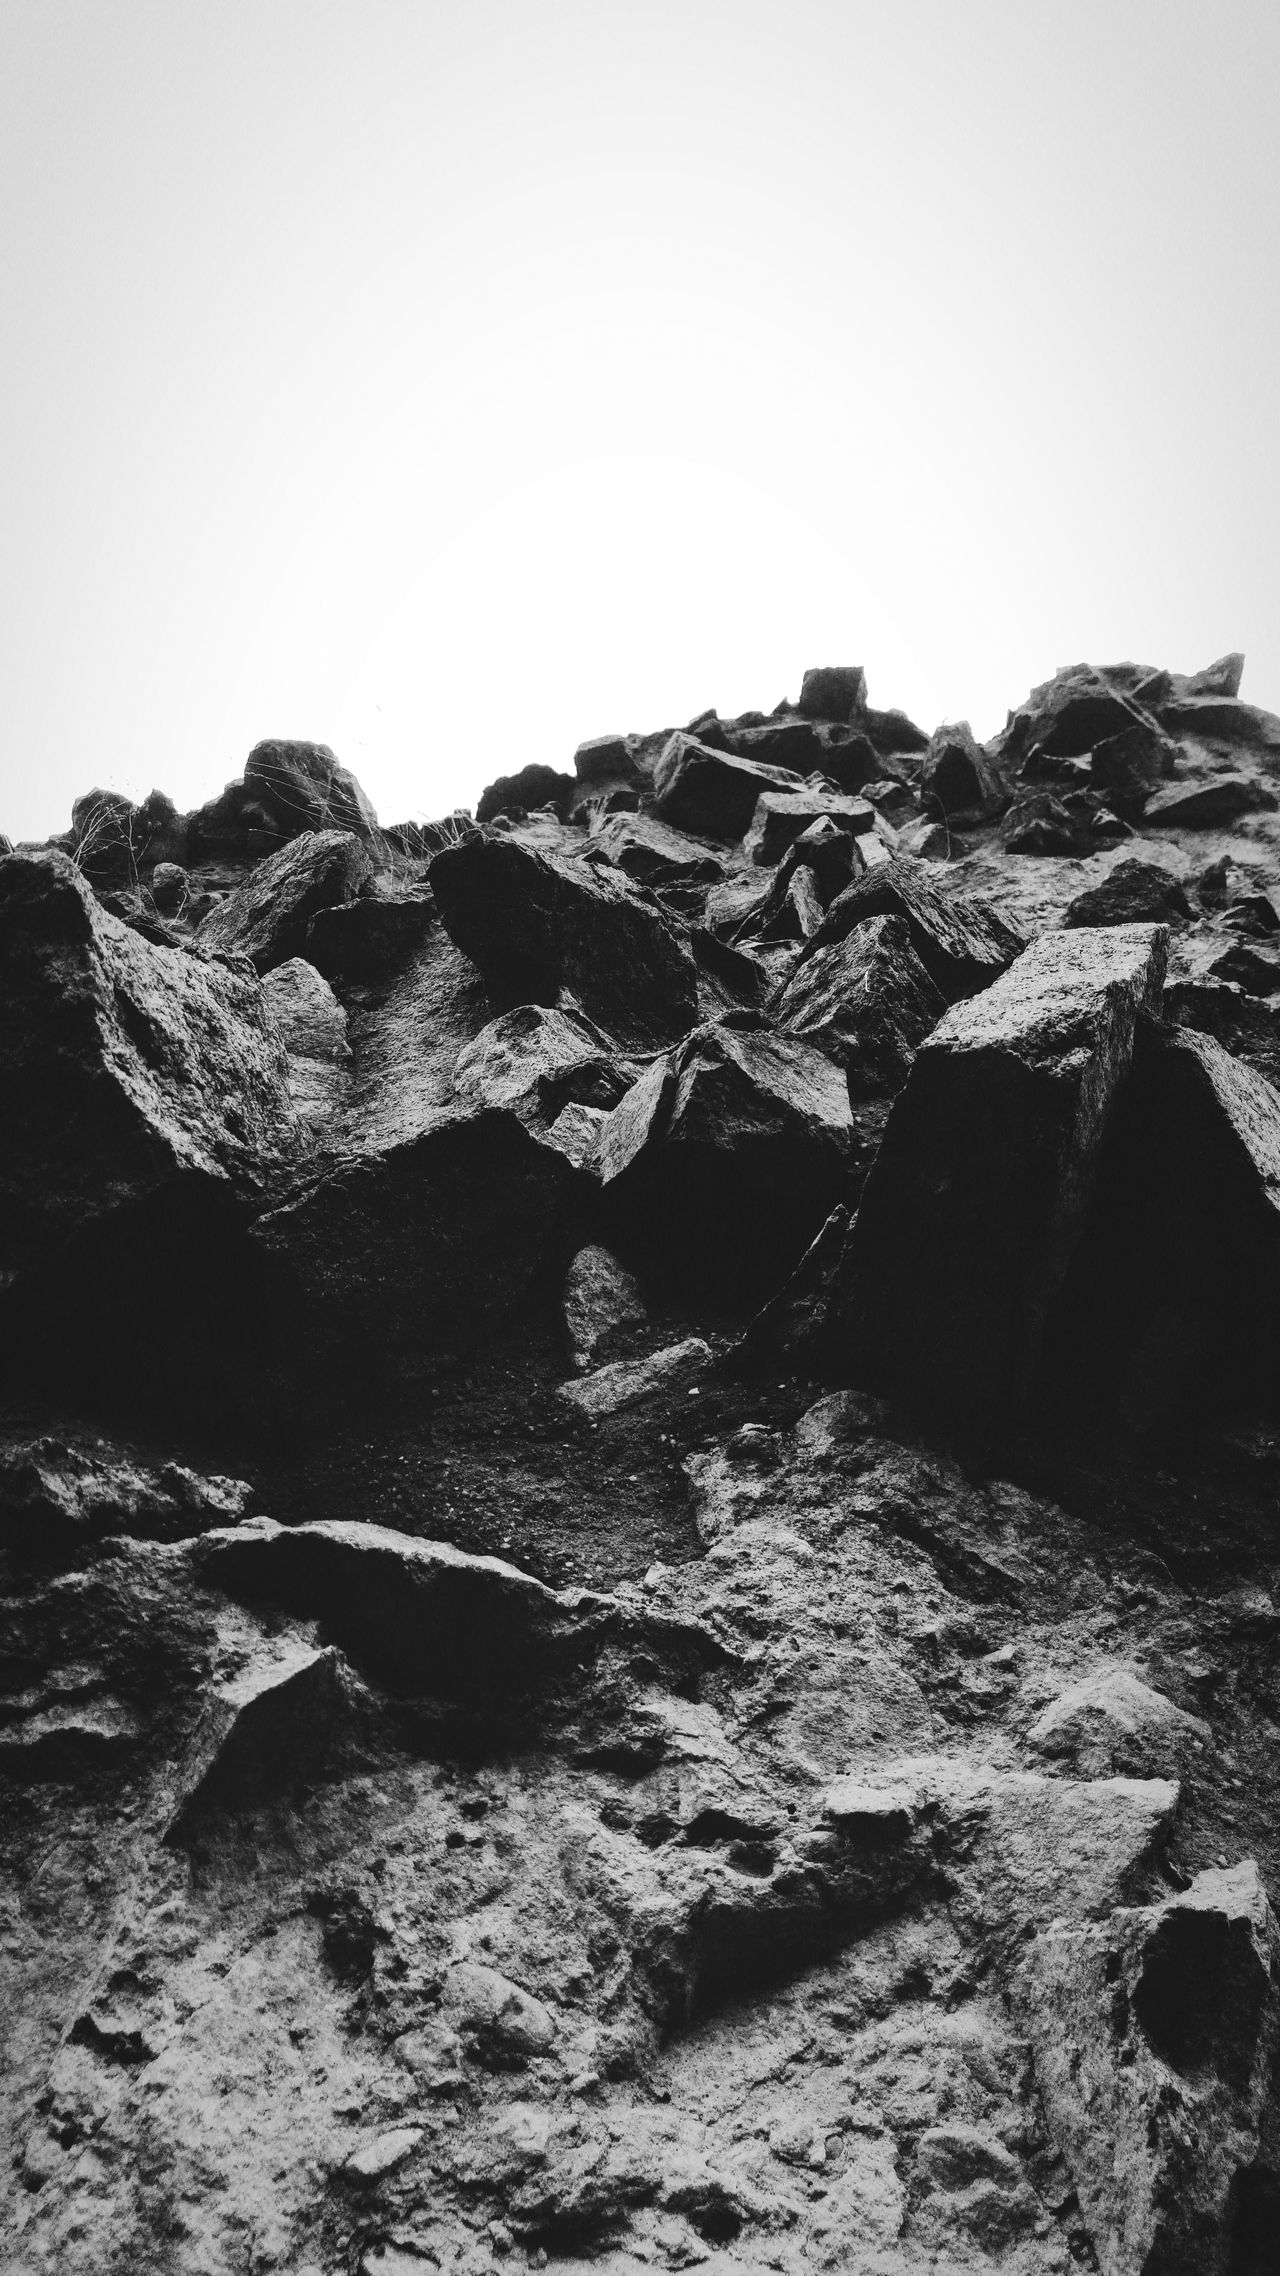 Obsessed with rock shapes... Landscape Social Issues No People Sky Nature Outdoors Day Mountain Beauty In Nature Natural Disaster